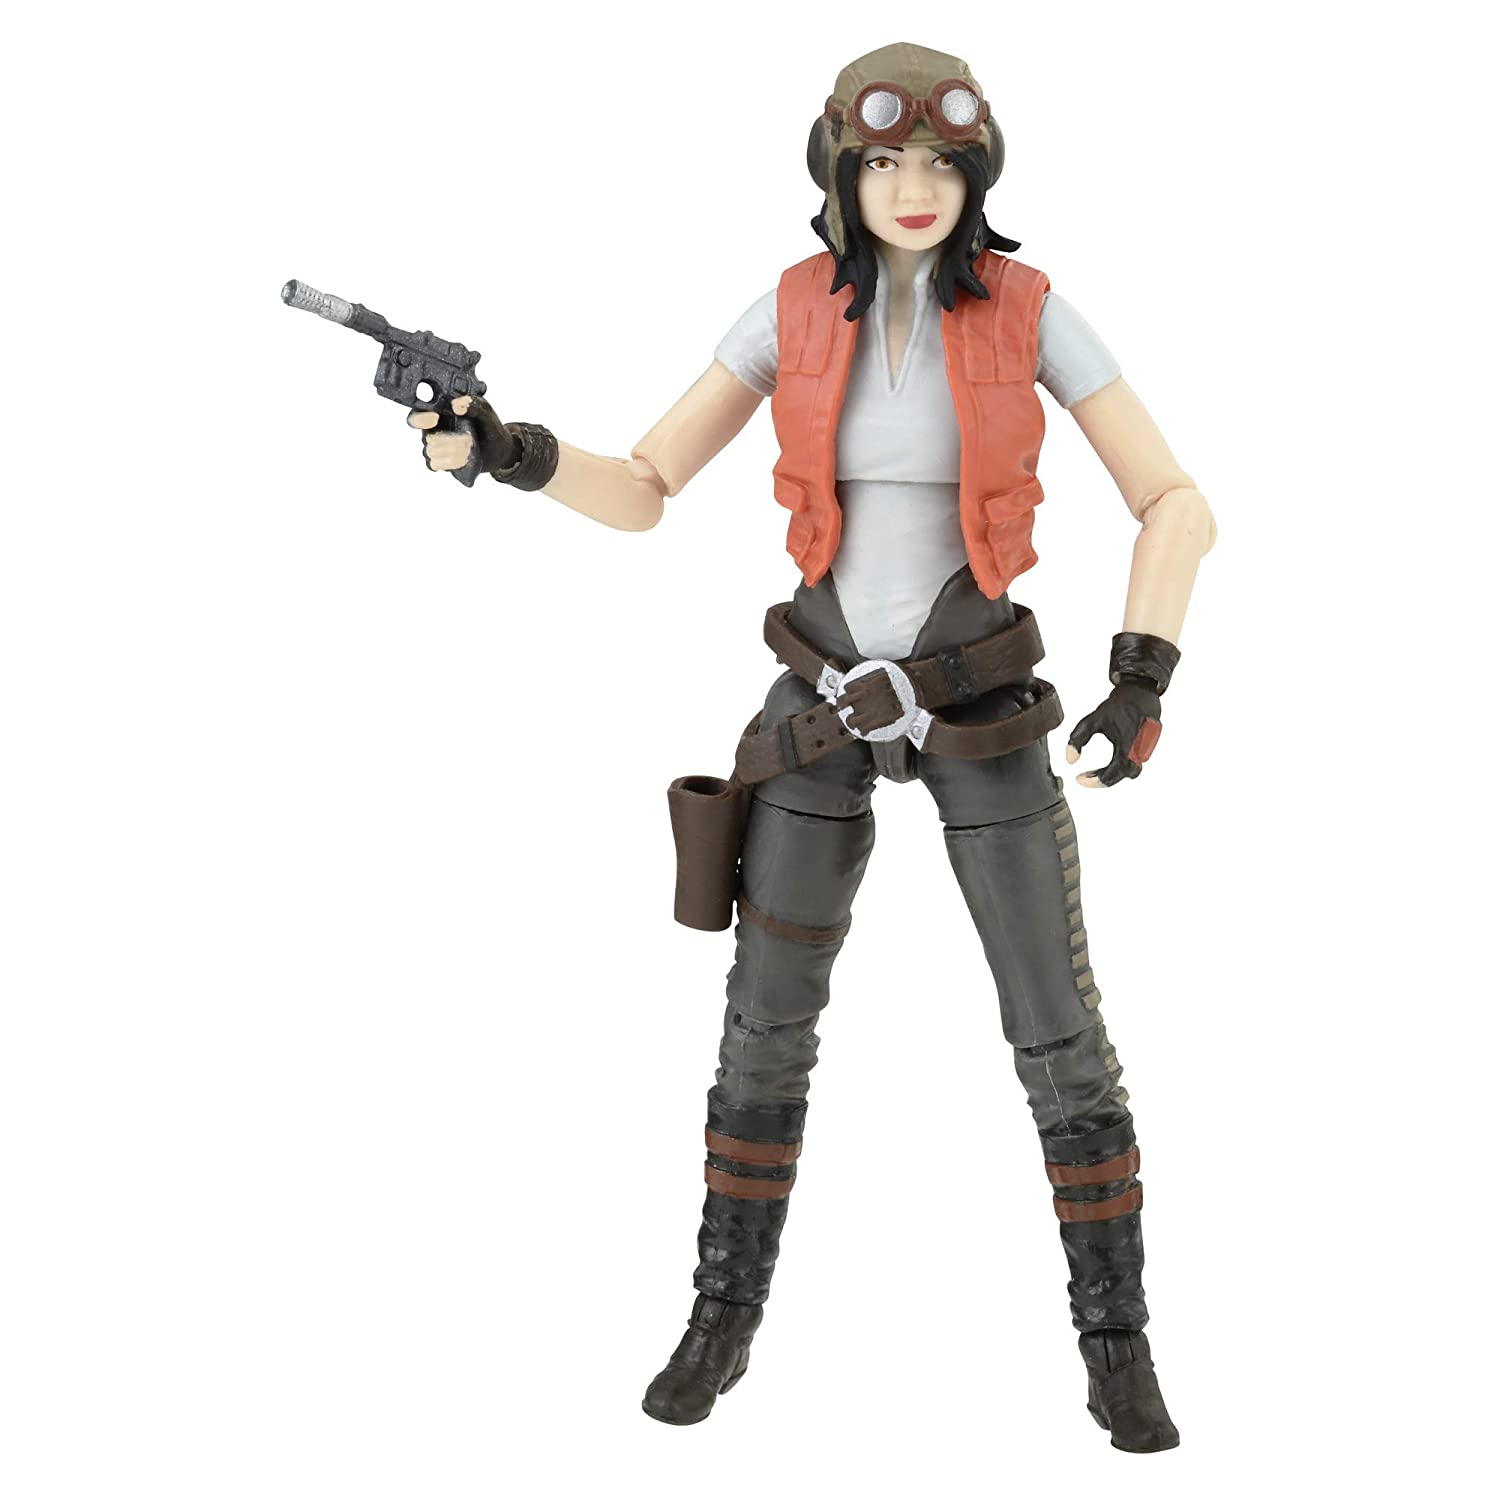 8da45ec92830 Amazon.com: Star Wars The Vintage Collection Doctor Aphra 3.75-inch Action  Figure: Toys & Games